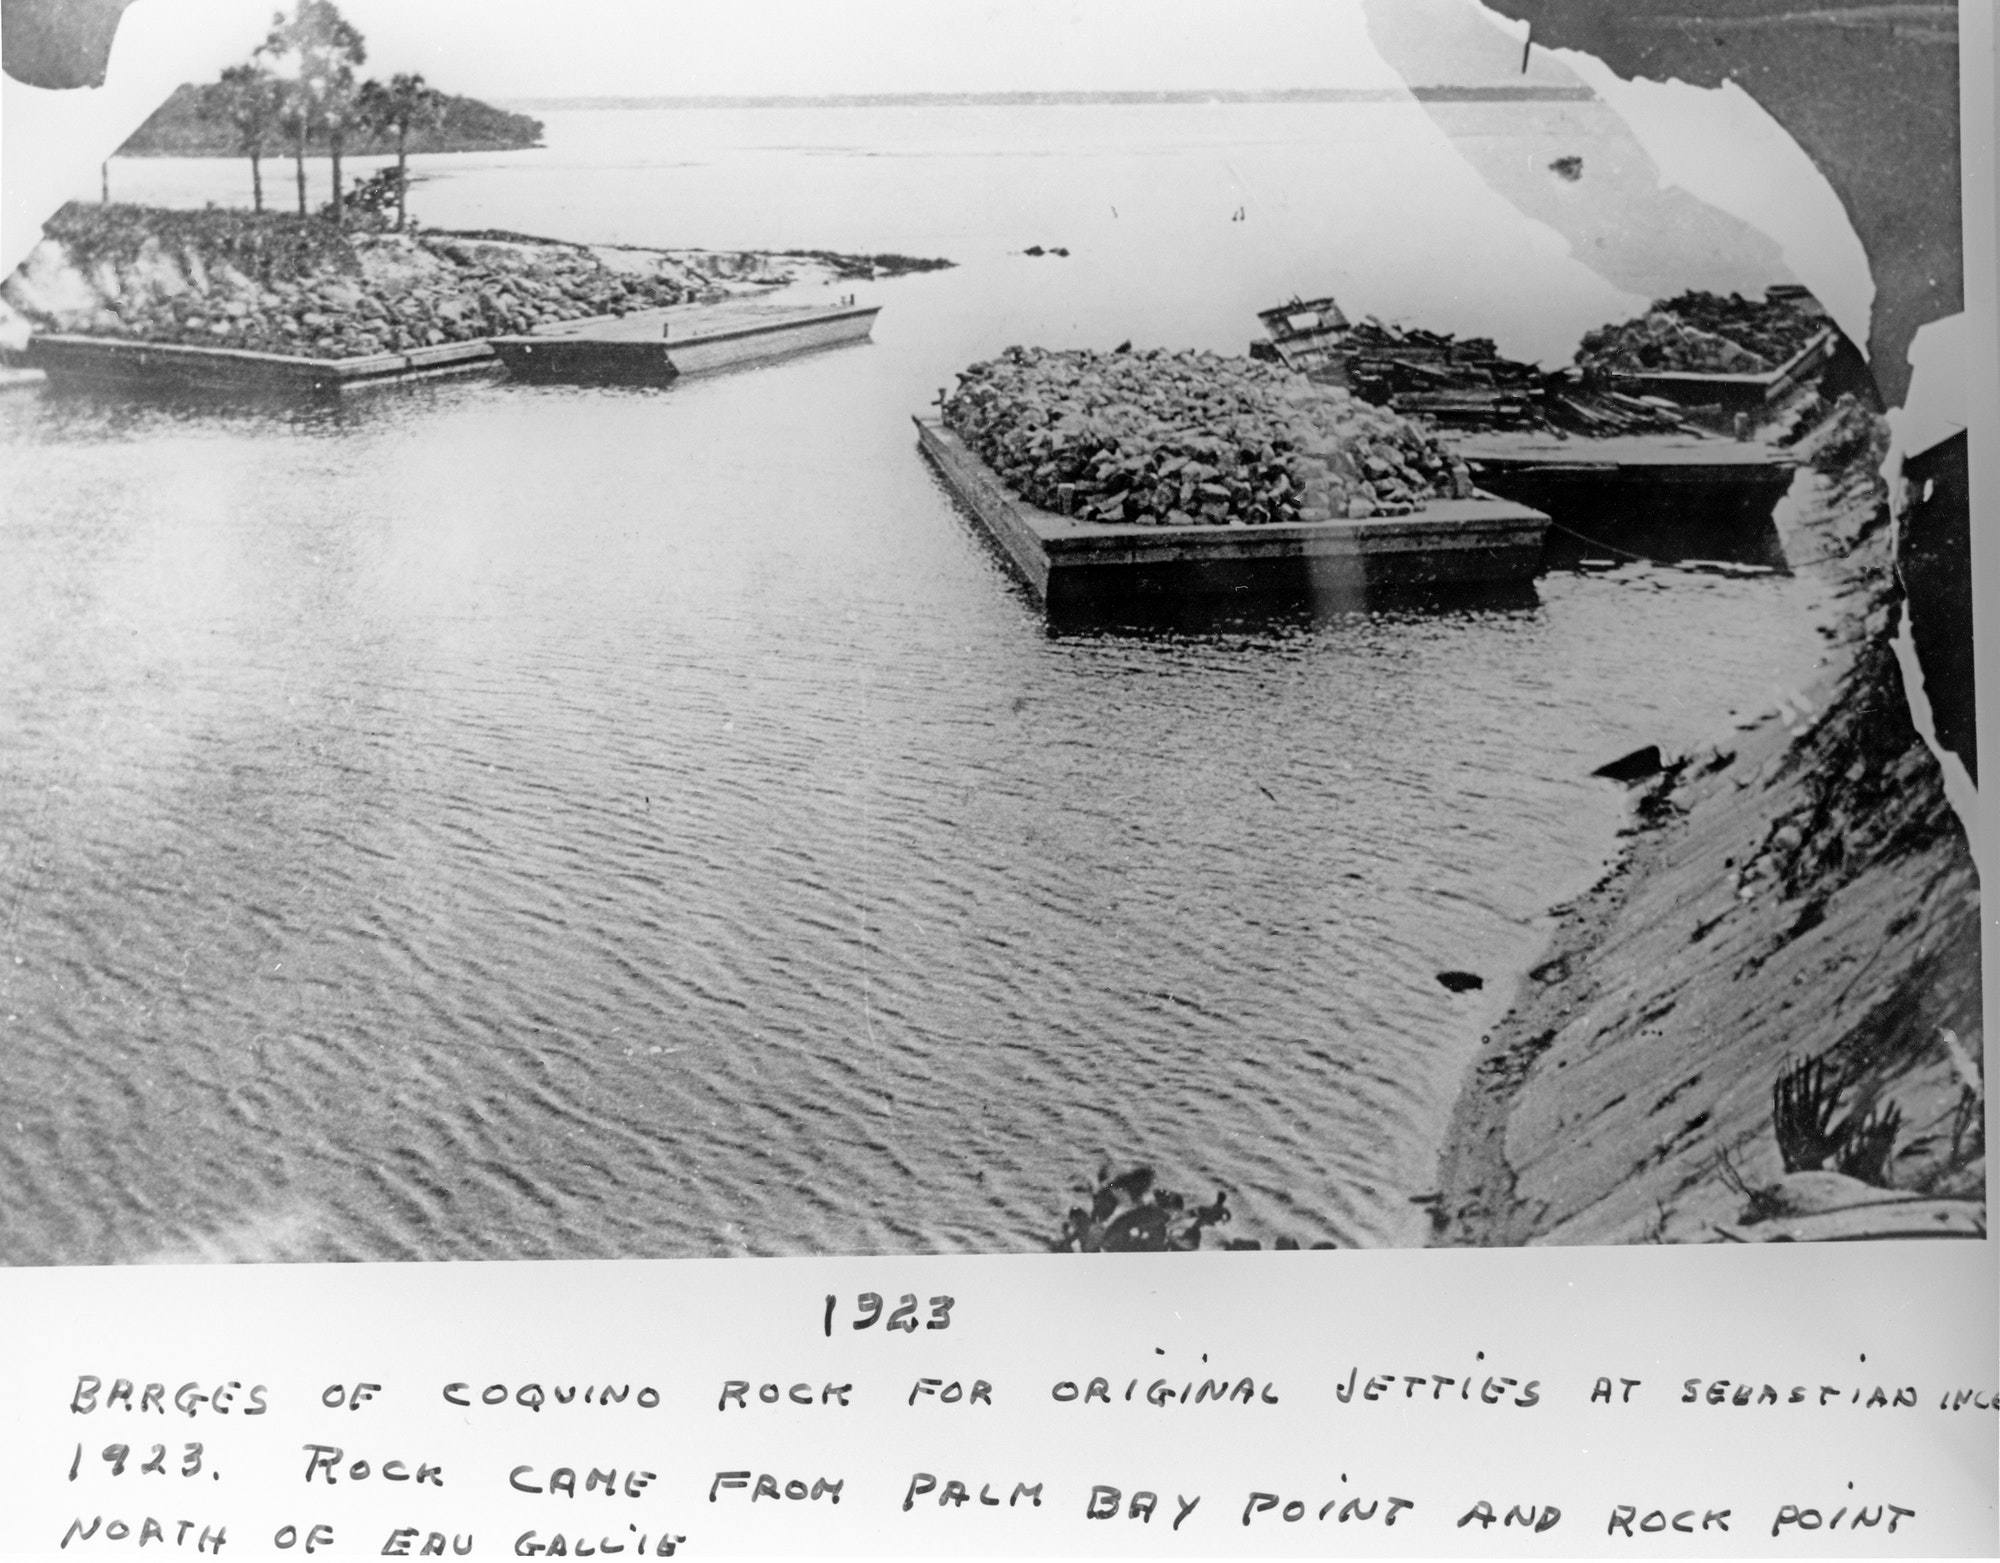 historical photo from 1923 showing barges carrying jetty rock and supplies at the inlet